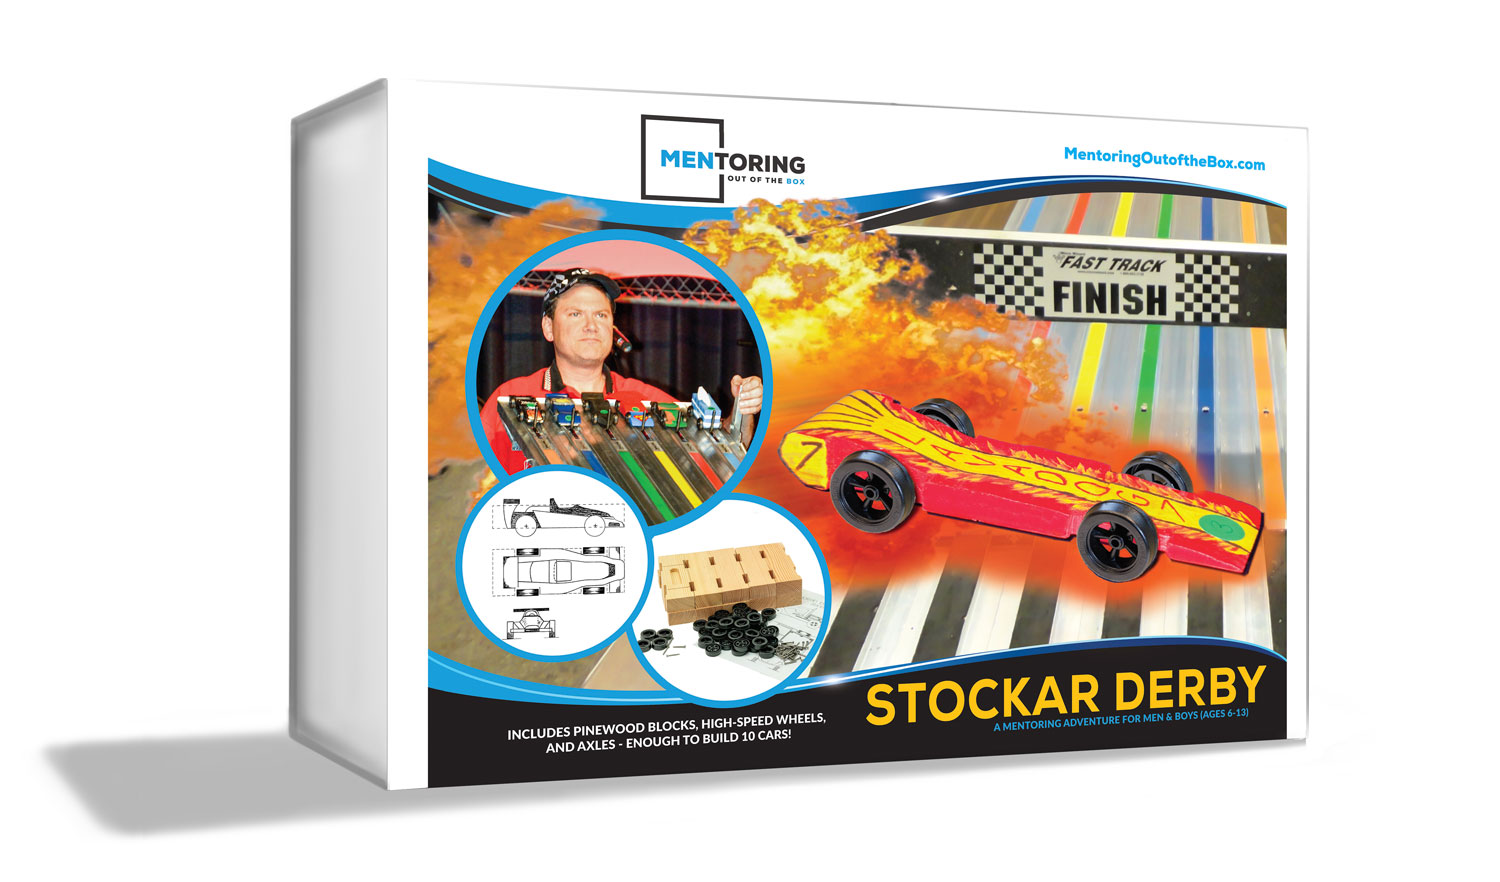 Mentoring Out of the Box - StocKar - for Men & Boys who want to build pinewood derby racers and learn about integrity!!